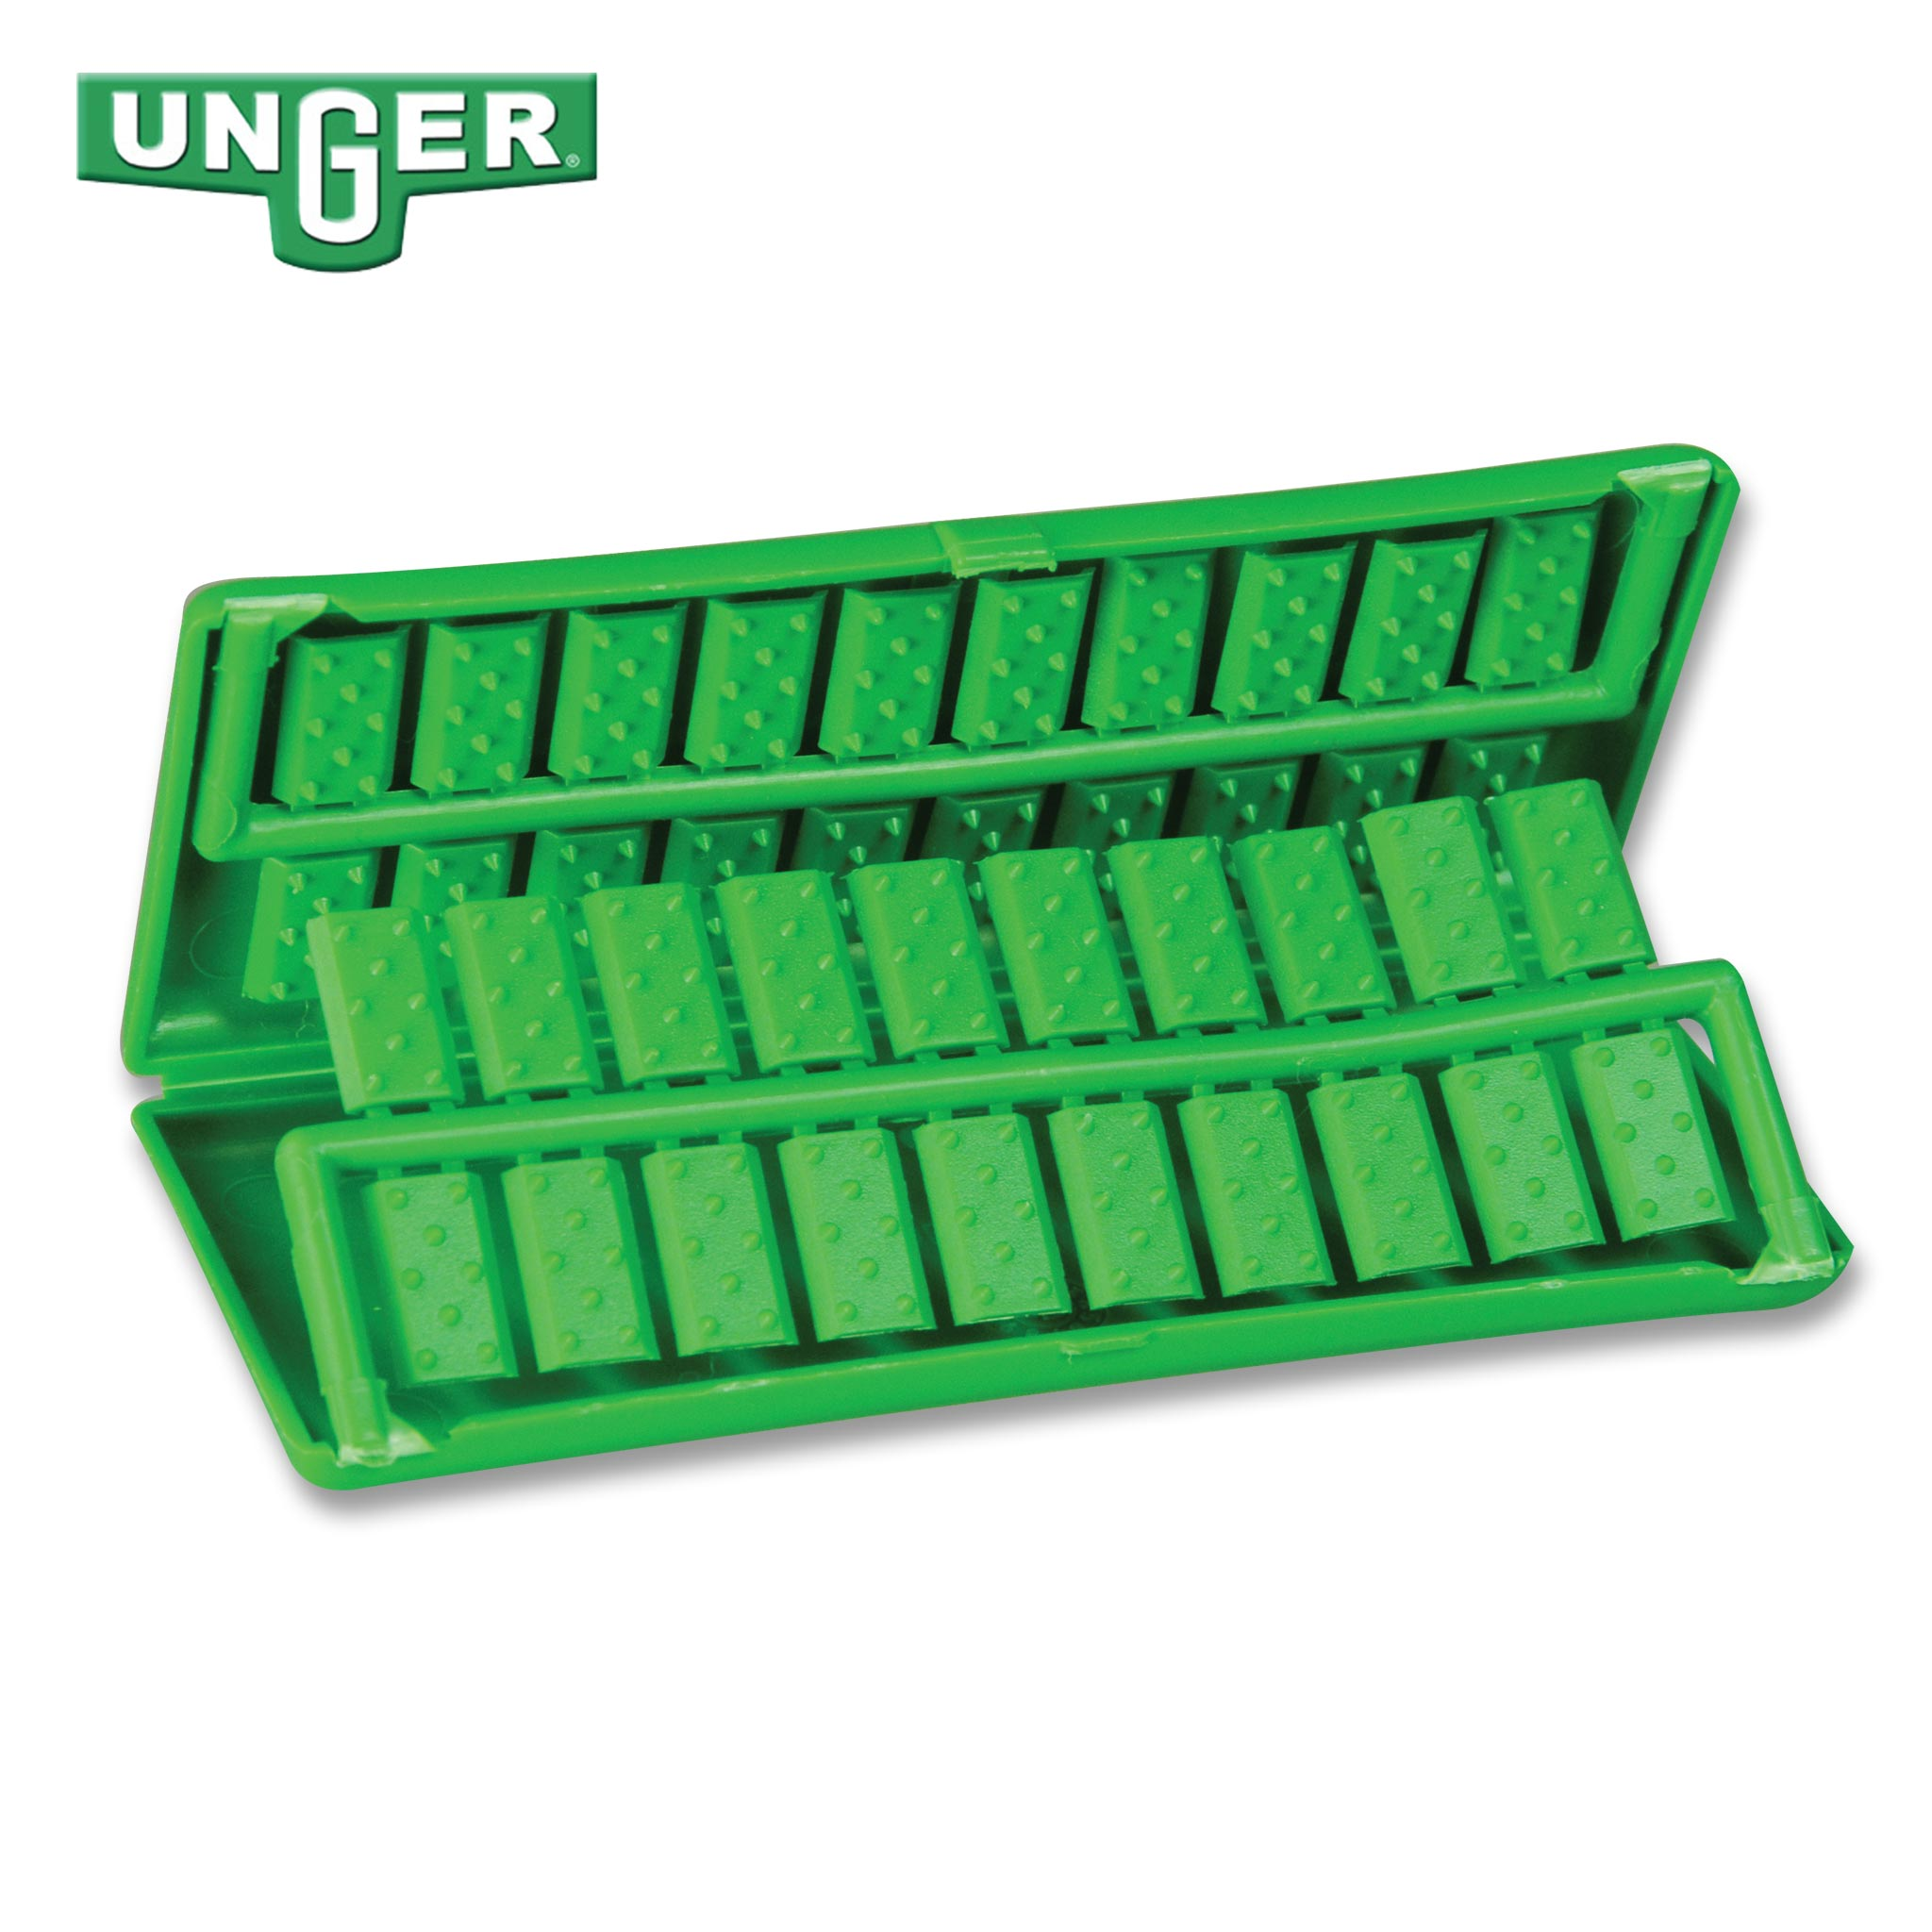 Unger Plasticlips - Channel Clips